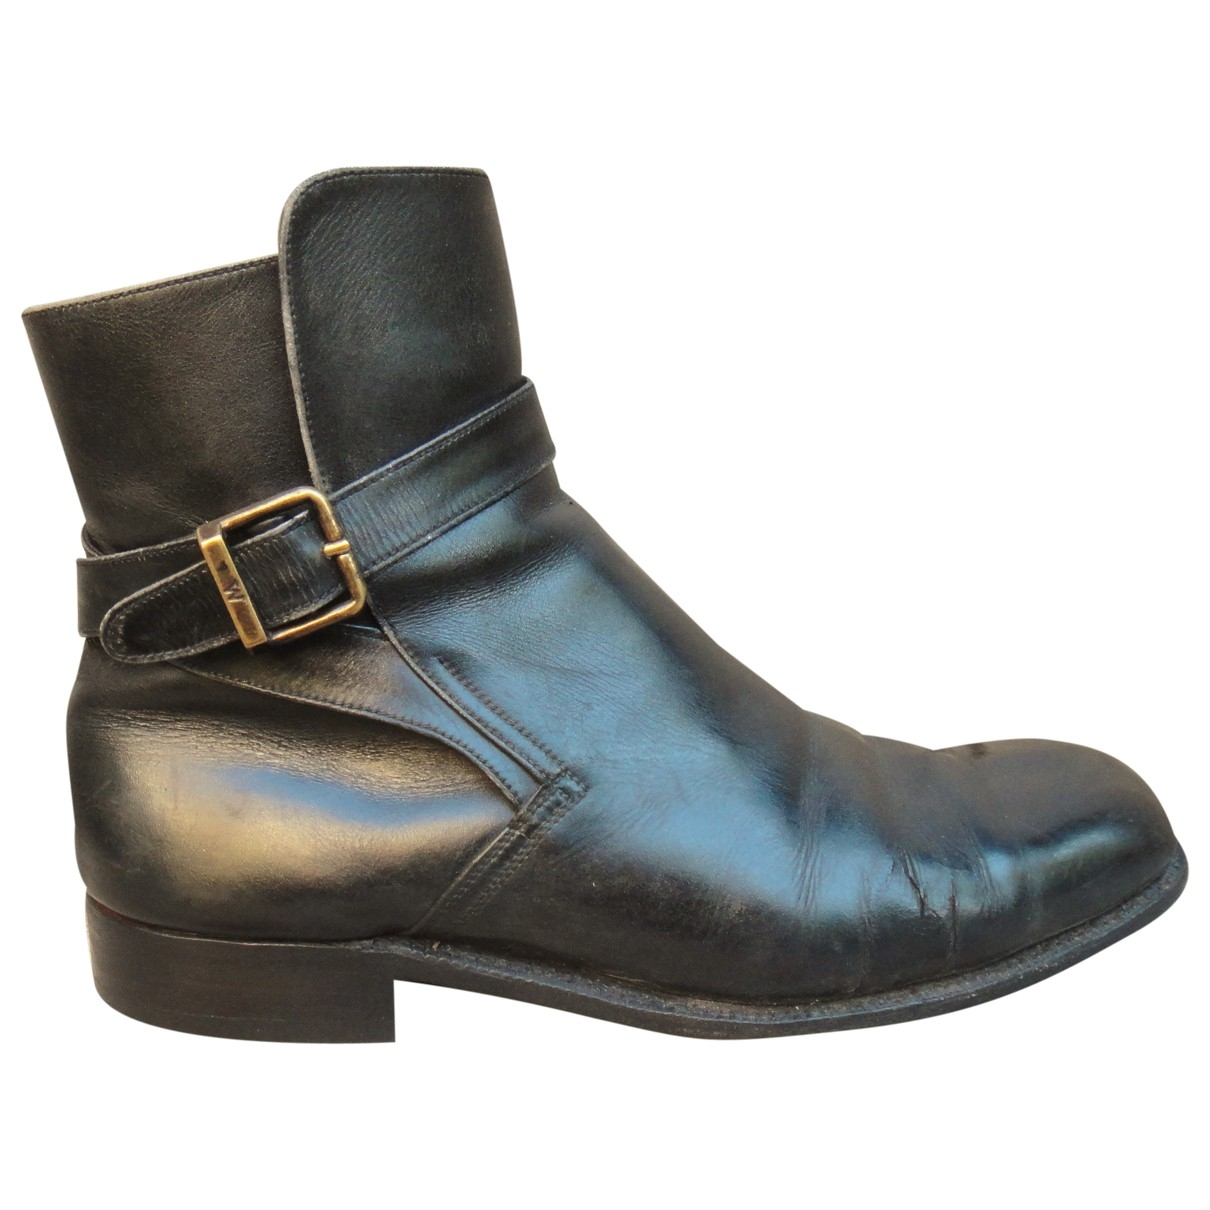 Jm Weston \N Black Leather Ankle boots for Women 6.5 UK